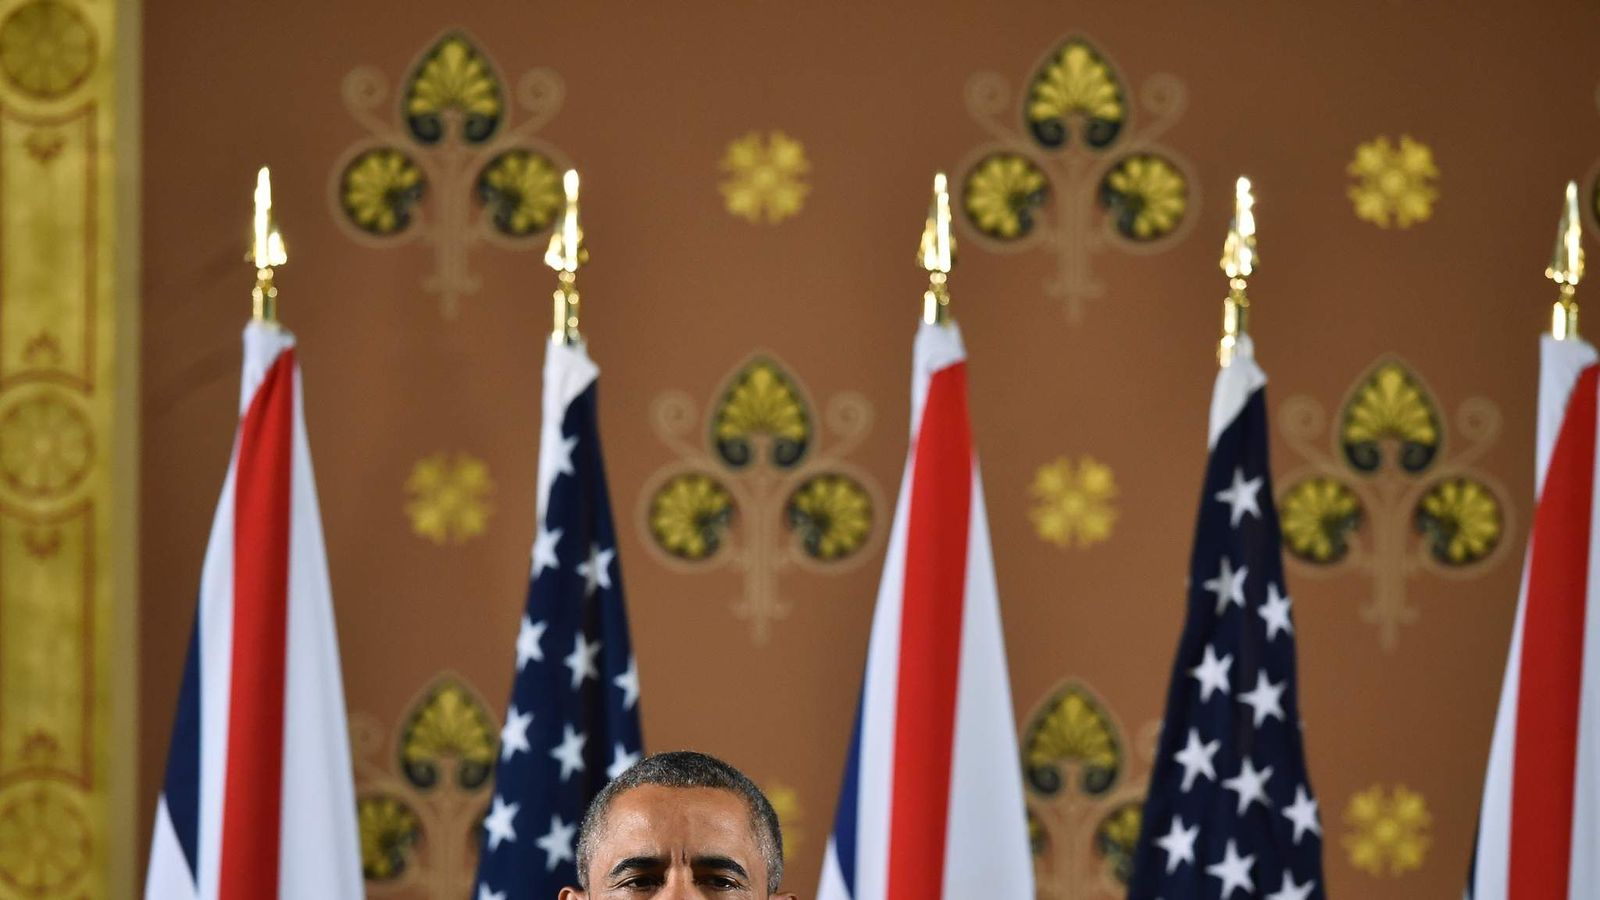 US President Barack Obama speaks during a press conference at the Foreign and Commonwealth Office in central London with Britain's Prime Minister David Cameron (unseen) following a meeting at Downing Street, in London